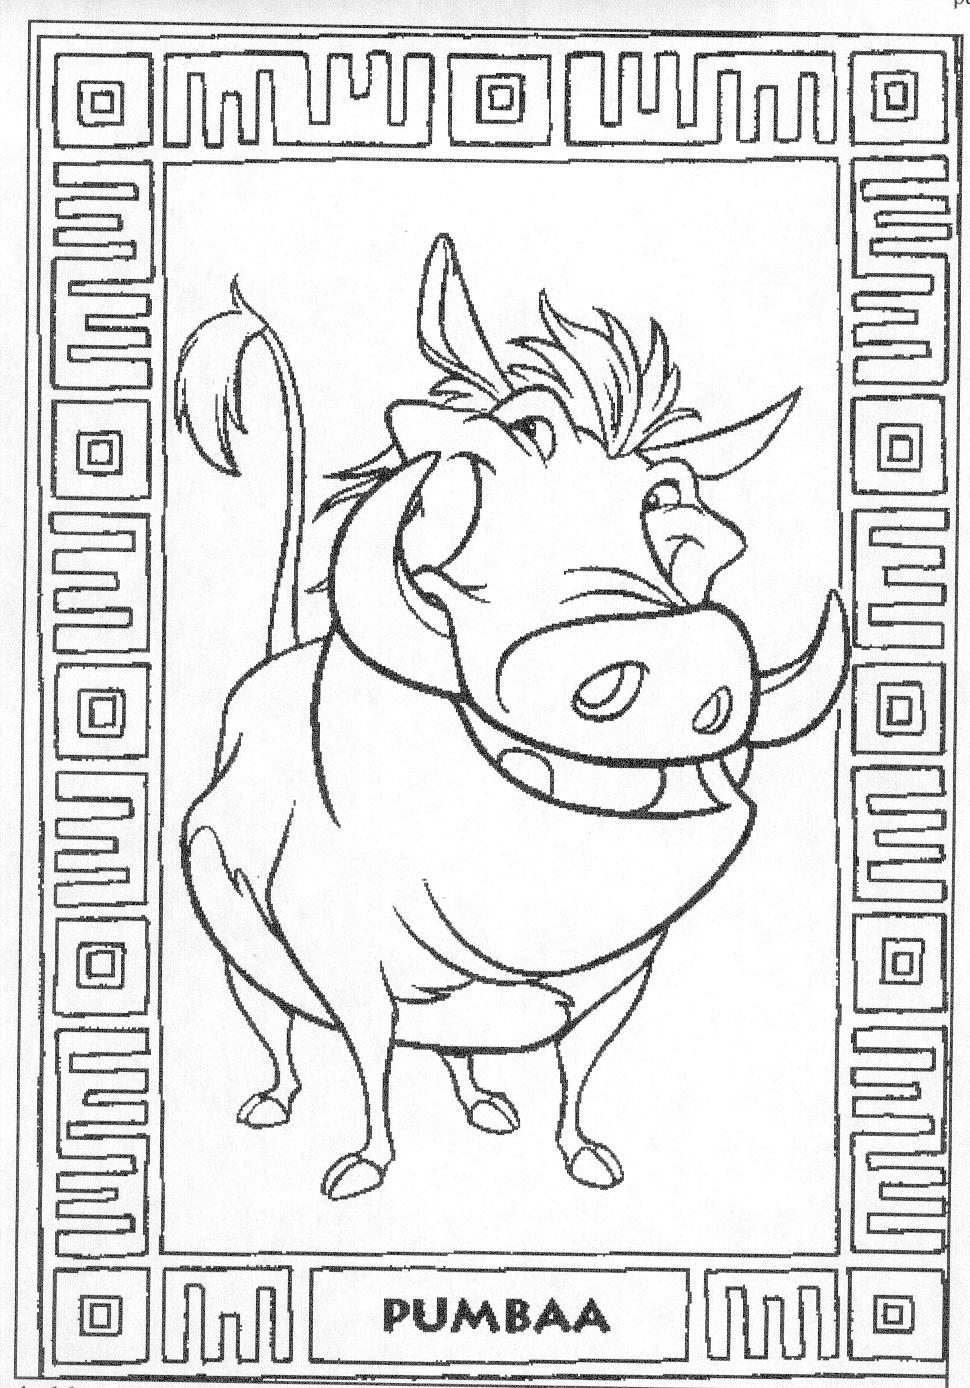 the lion king coloring pages options for image print this coloring page